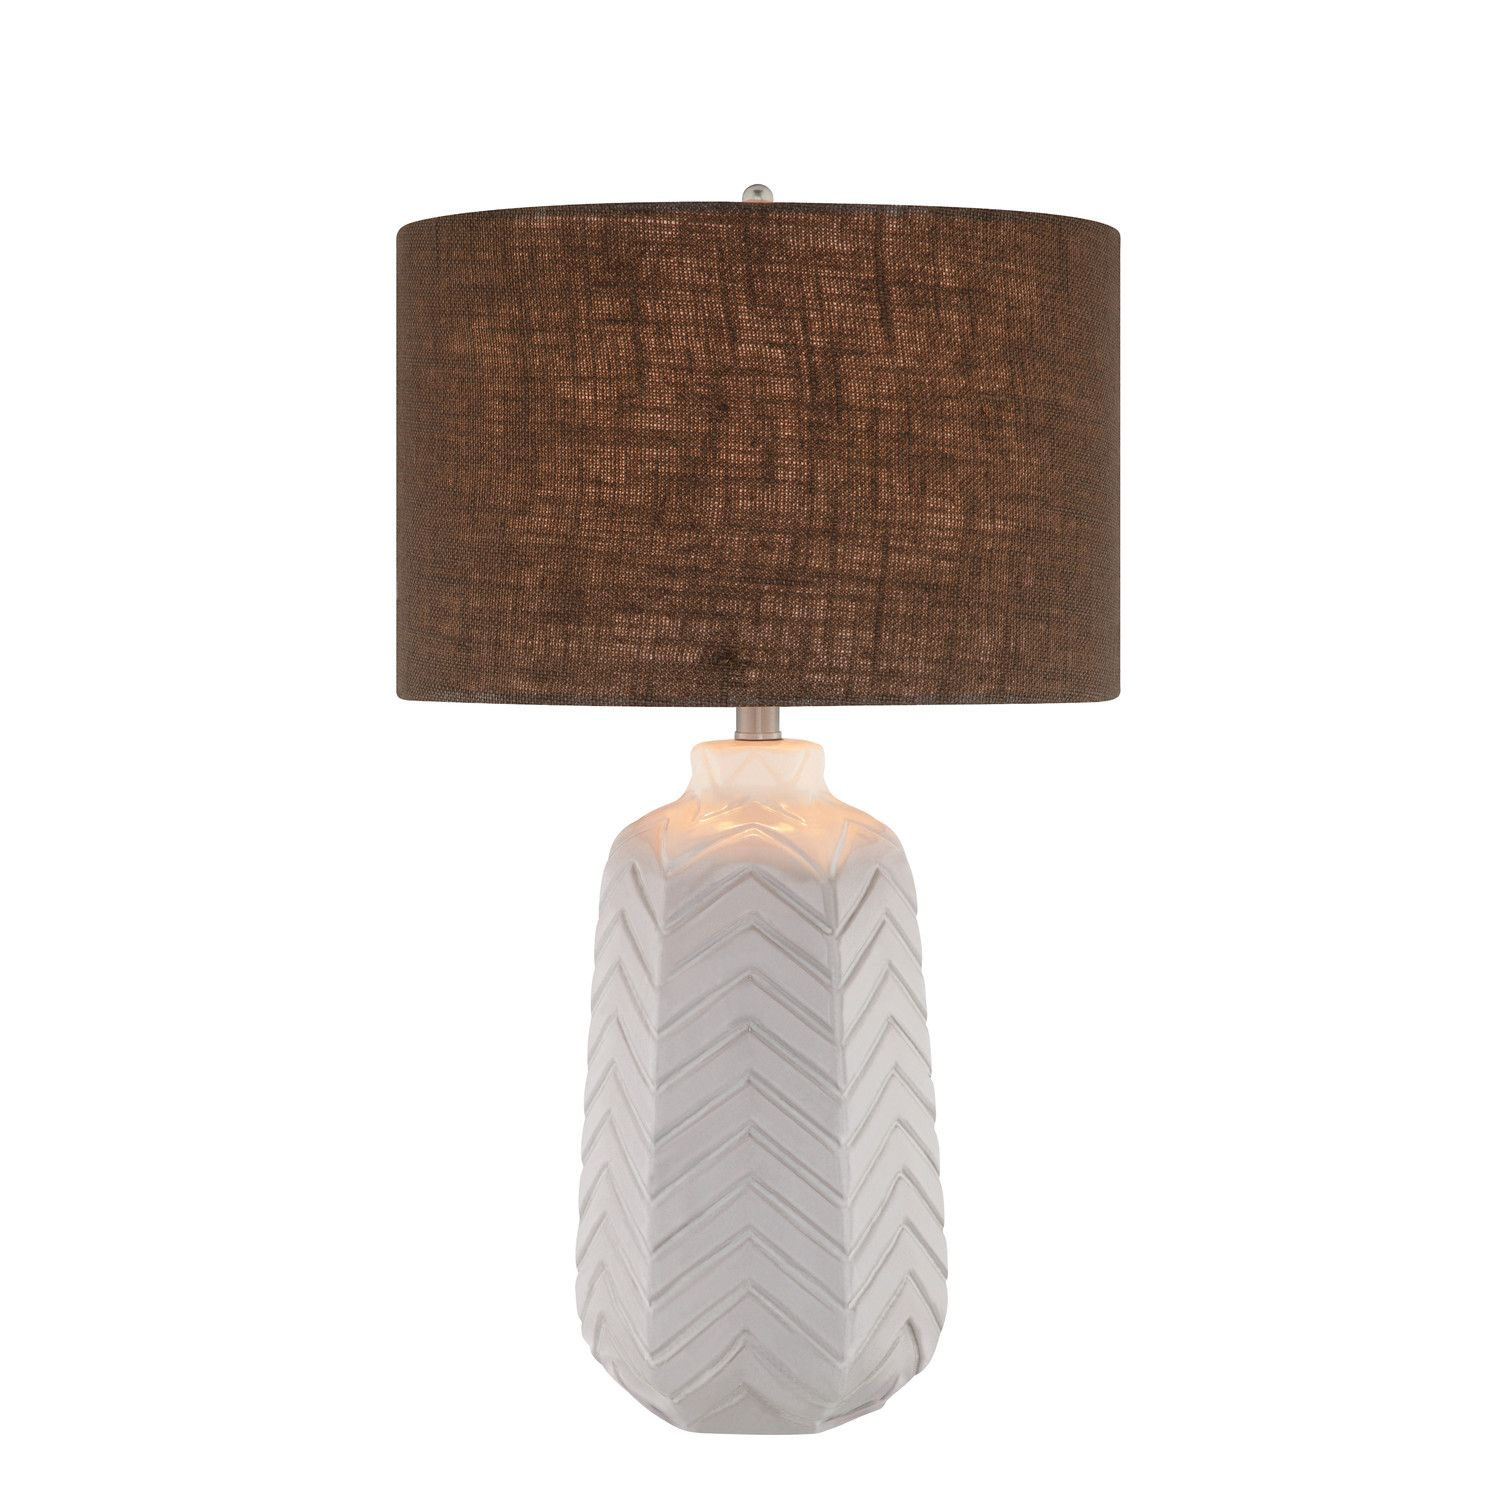 Masculine Table Lamps With 3 Way Switch And Double Gourd Table Lamps